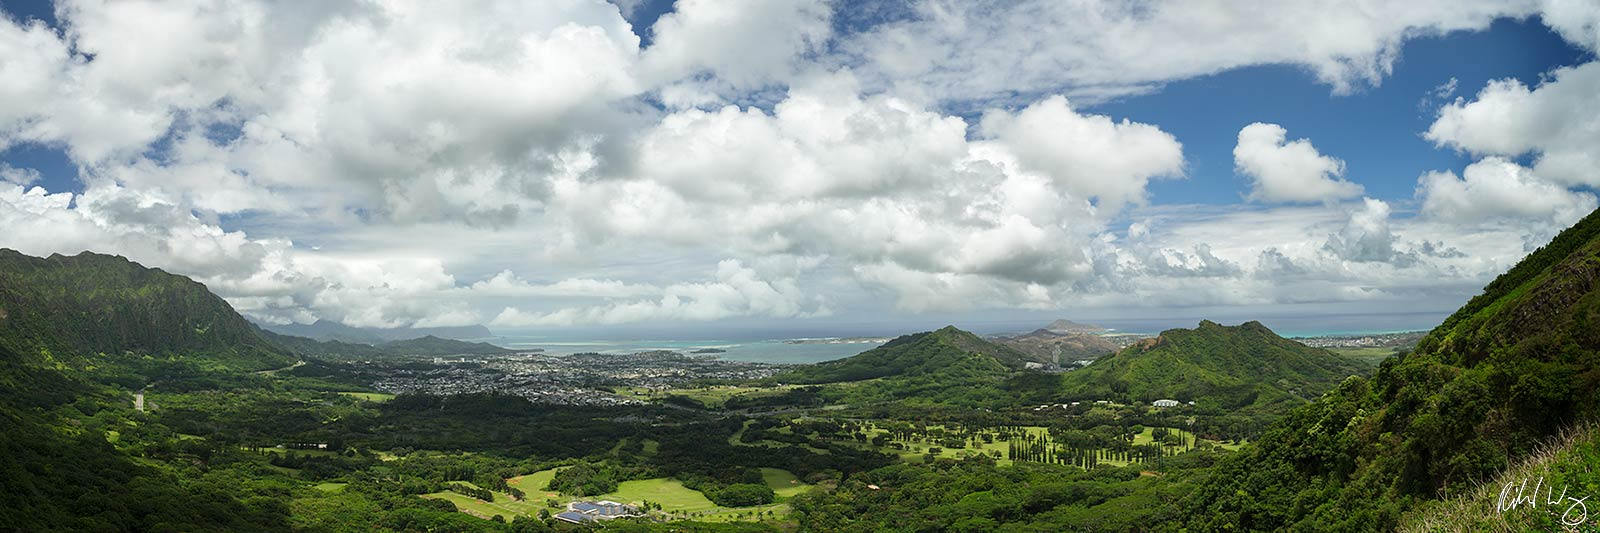 Nuʻuanu Pali Lookout Panoramic, O'ahu, Hawaii Limited Edition of 10 Prints My wife and I had decided to explore the windward...